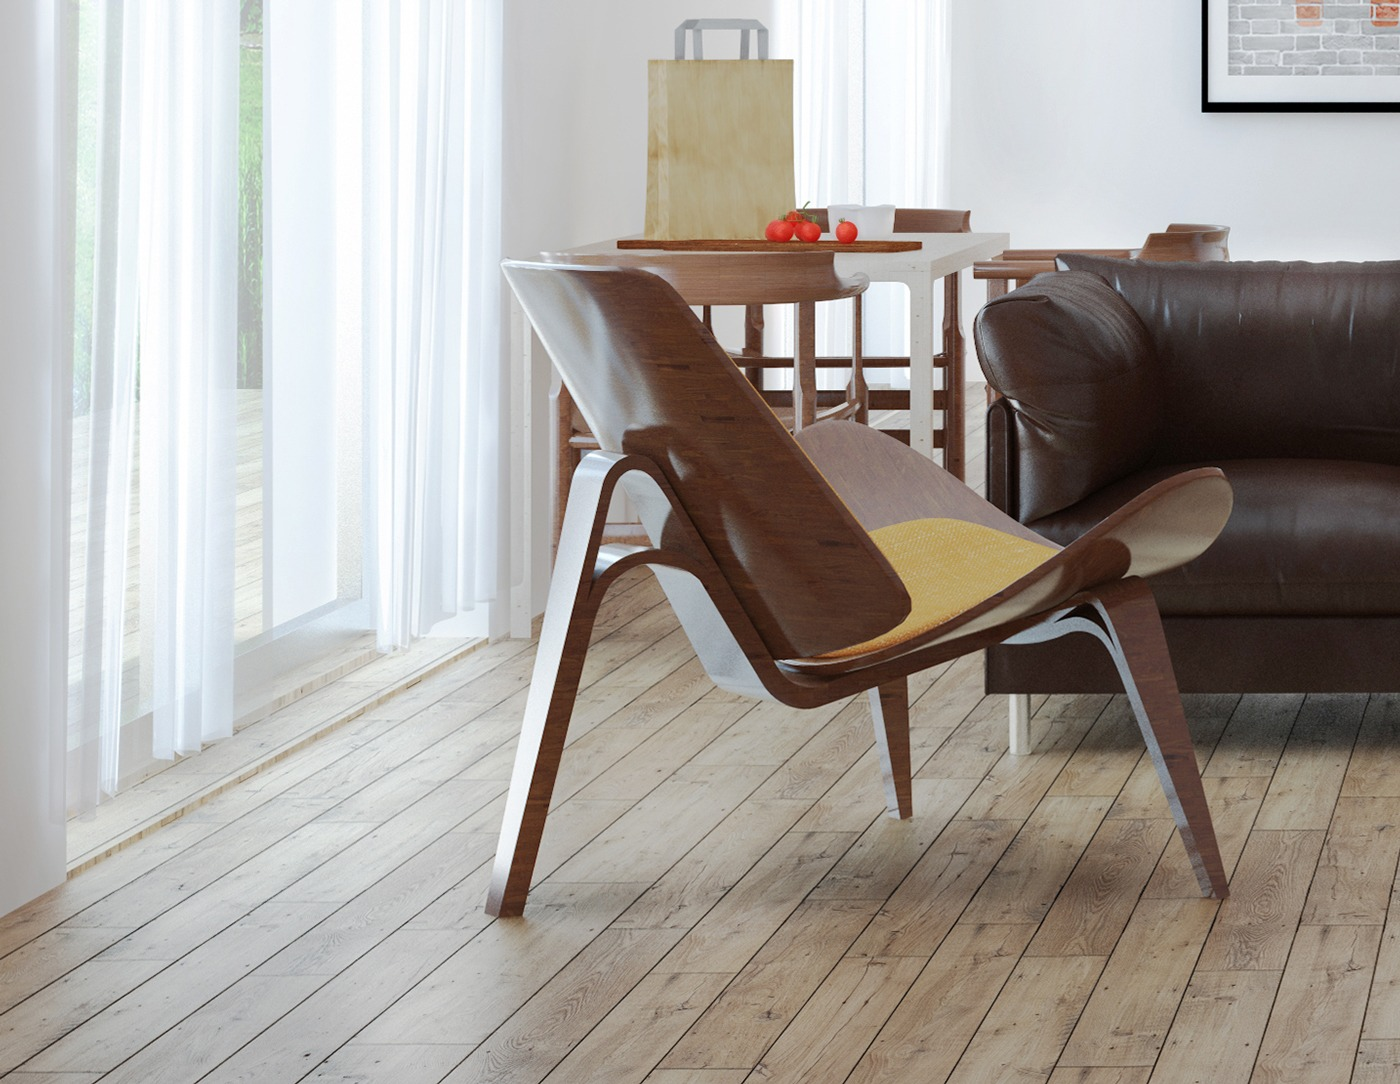 Molded Wood Chair - 3 beautiful scandinavian style interiors